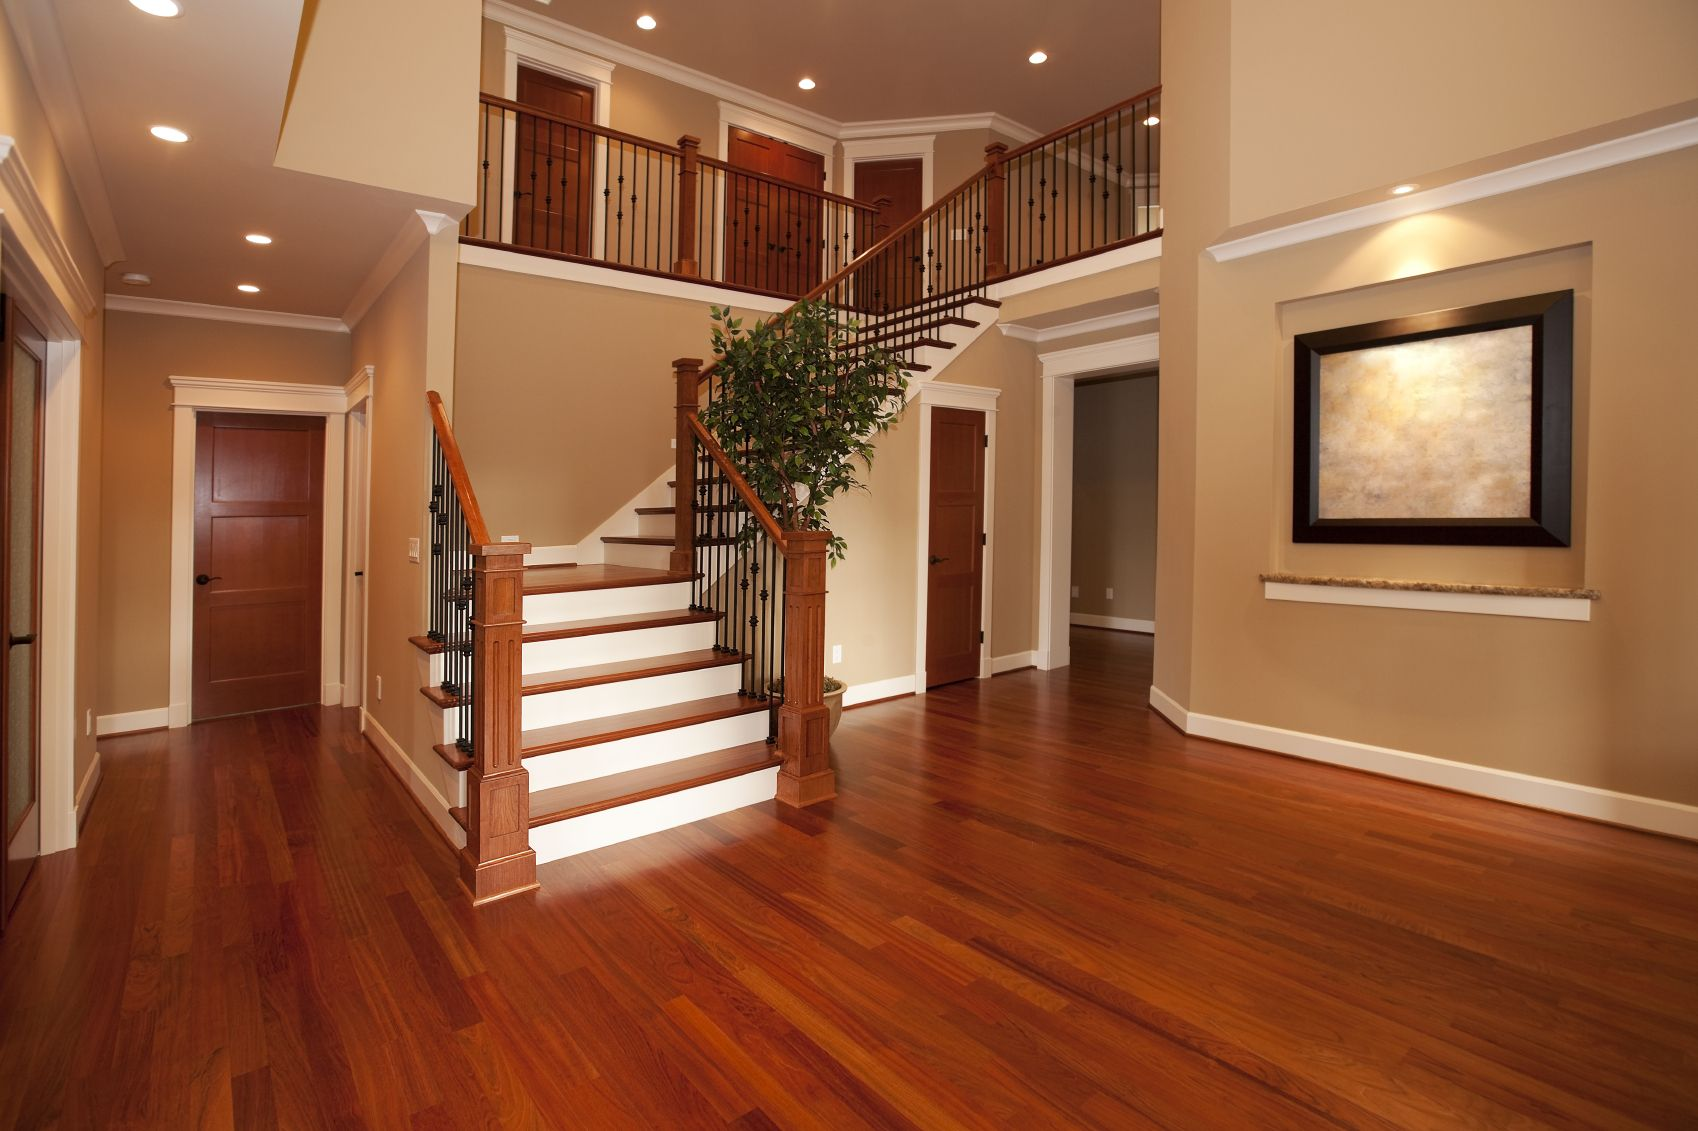 Solid Hardwood Flooring | Metro Atl. Floors Inc. In Marietta, Georgia